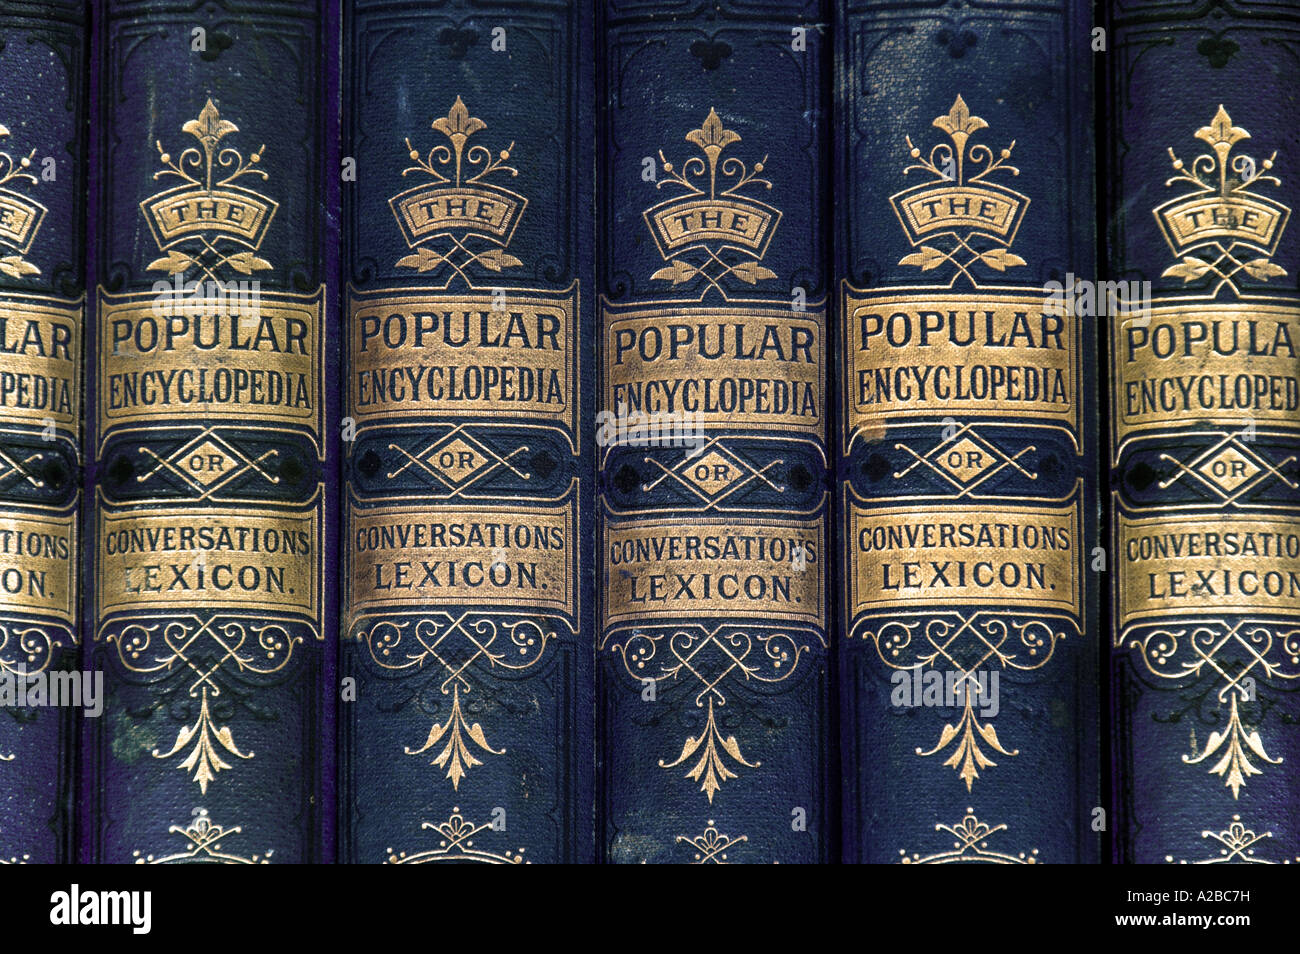 Vintage Popular Encyclopaedia or Conversations Lexicon 1875 - Stock Image